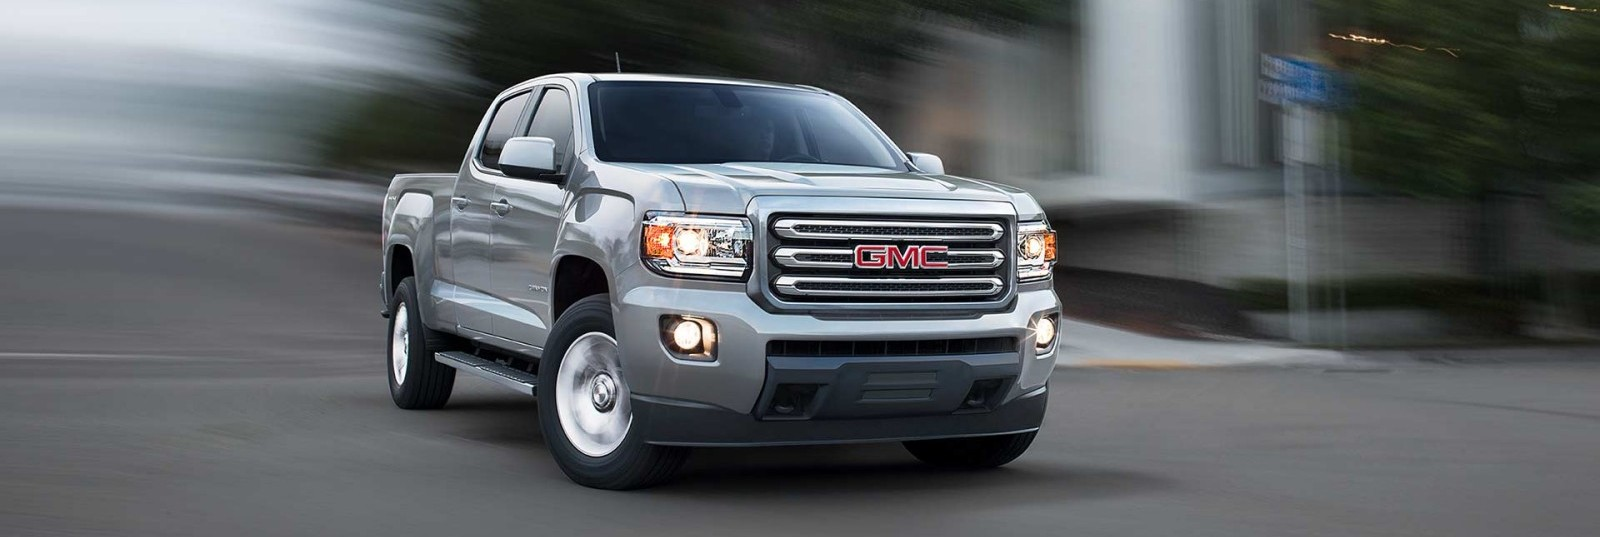 Used Pickup Trucks for Sale near Rochester, NY